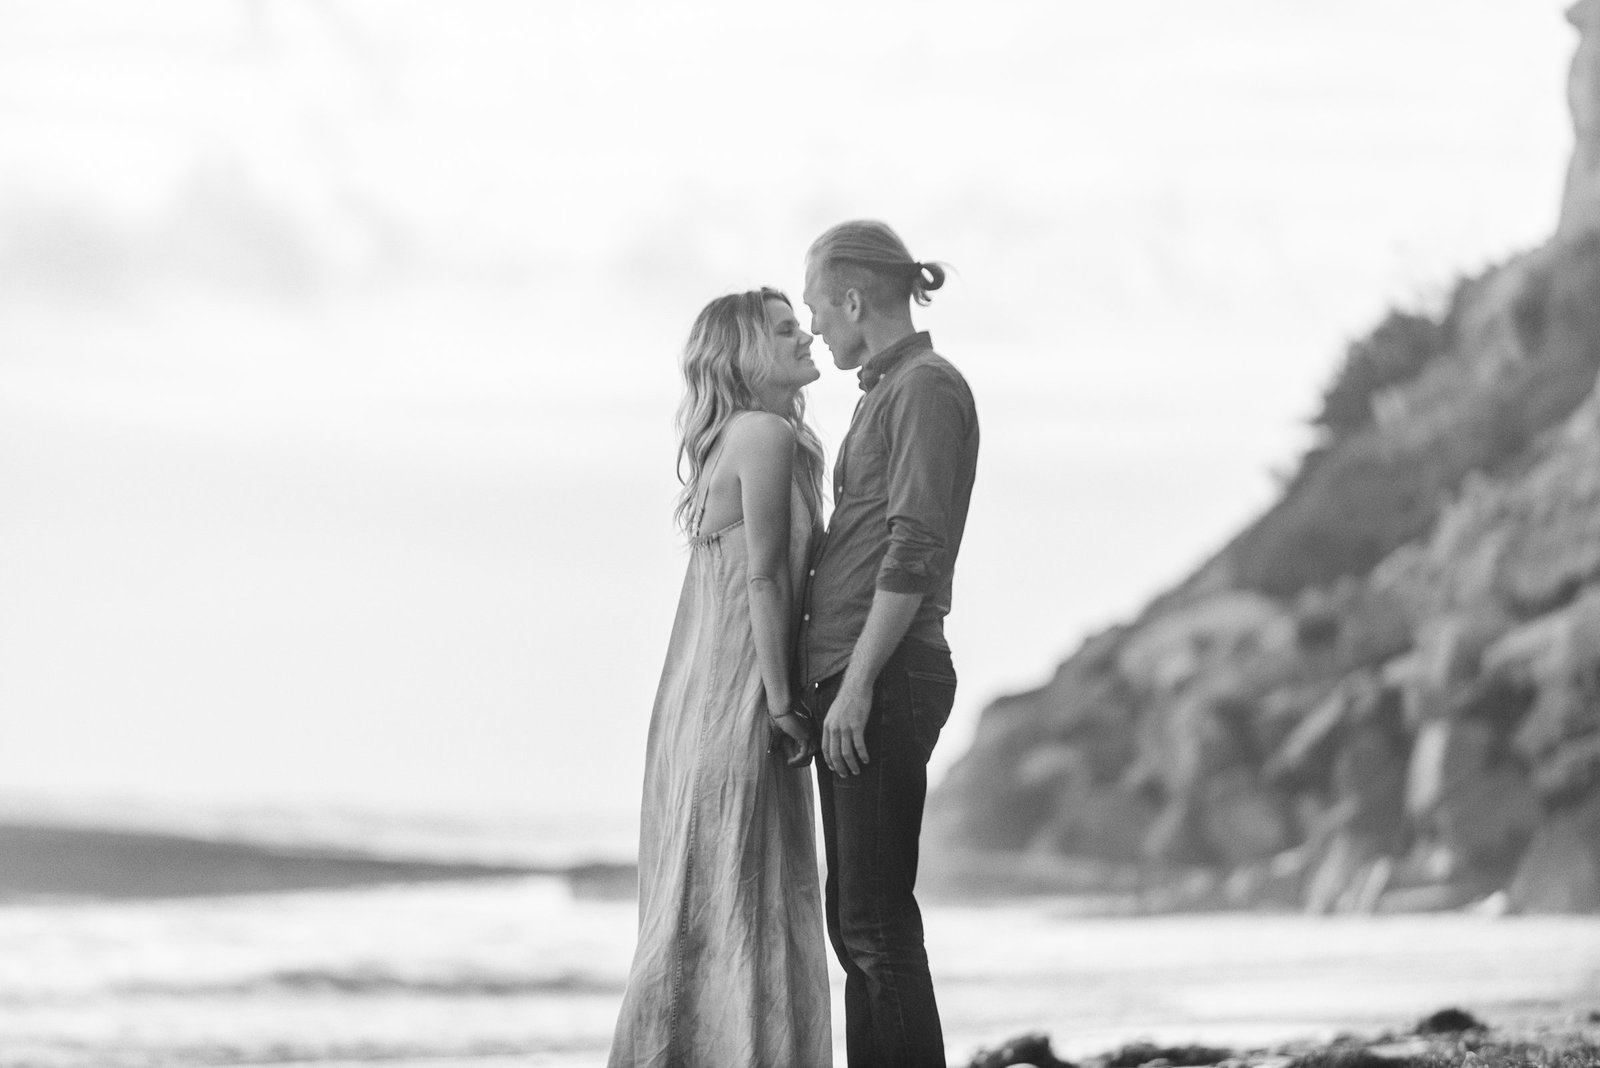 20180221-Pura-Soul-Photo-Encinitas-Engagement-Shoot-35